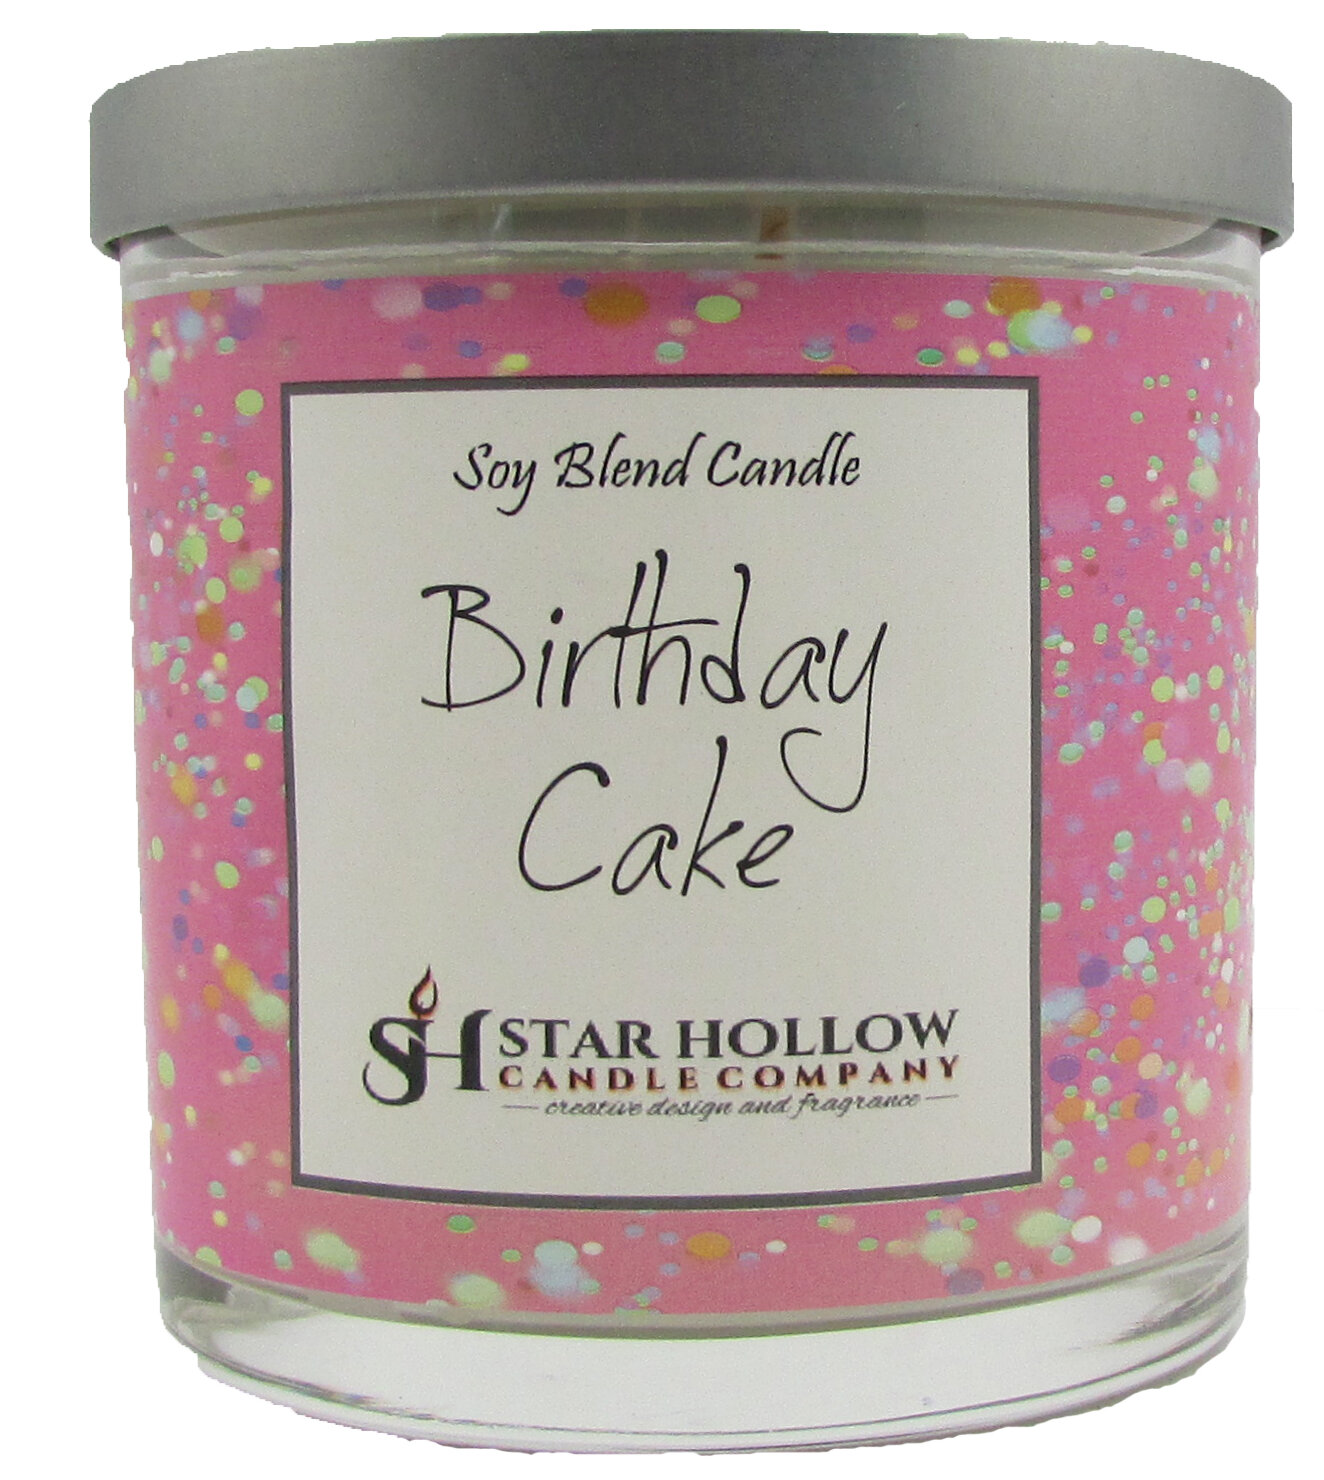 StarHollowCandleCo Birthday Cake Scented Jar Candle